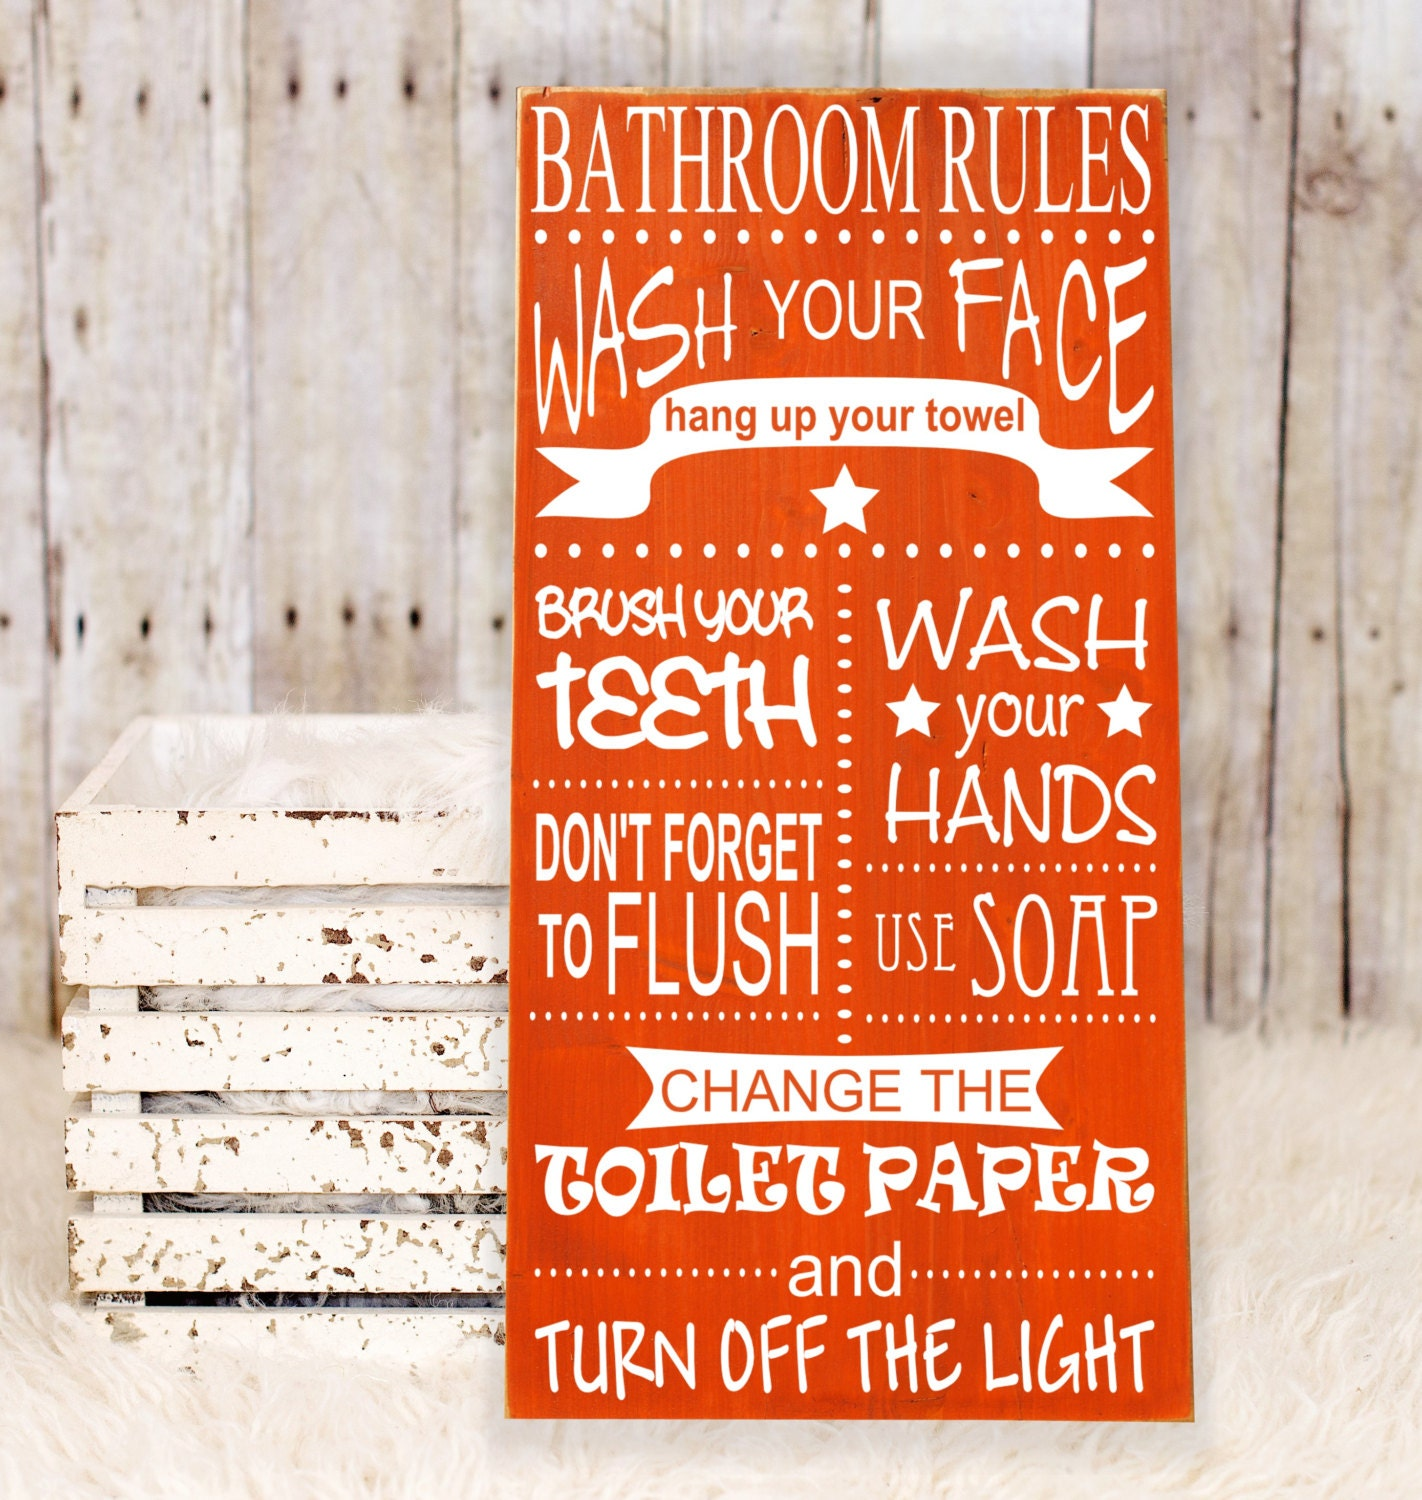 Bathroom rules wall decor subway art vinyl wooden sign for Bathroom decor rules